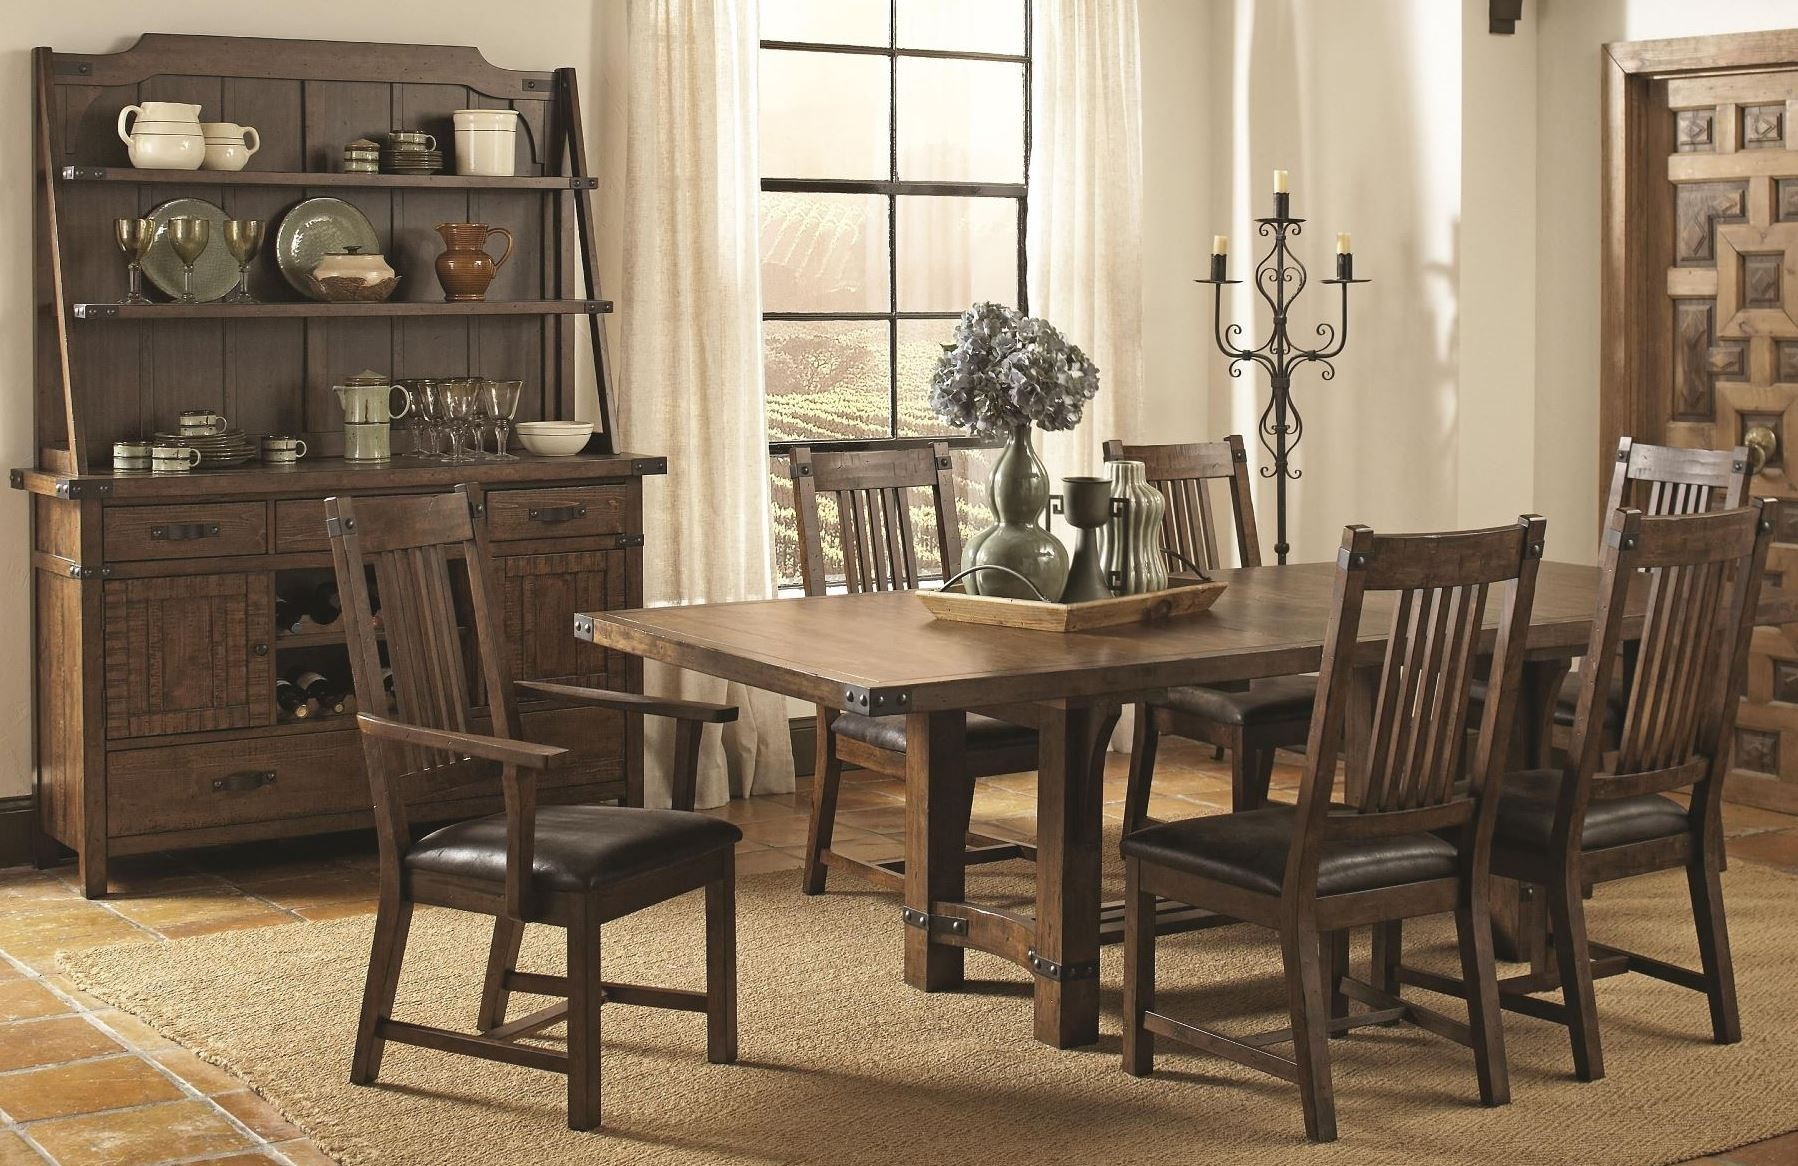 Dining Room Furniture Rustic Padima Rustic Rough Sawn Rectangular Extendable Dining